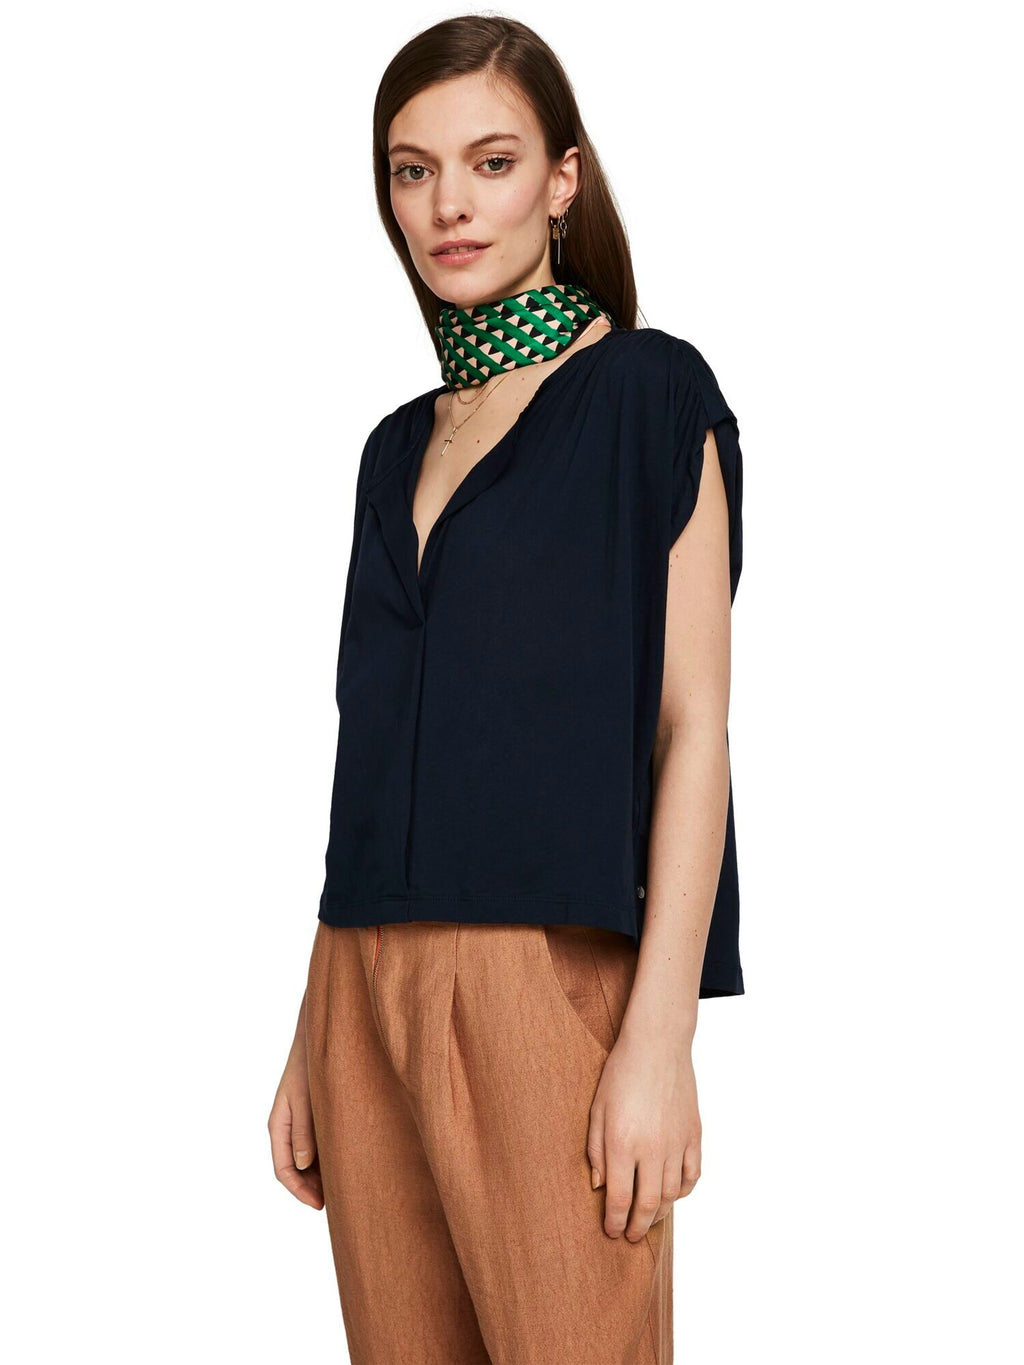 SCOTCH AND SODA - Gathered Jersey Top online at PAYA boutique